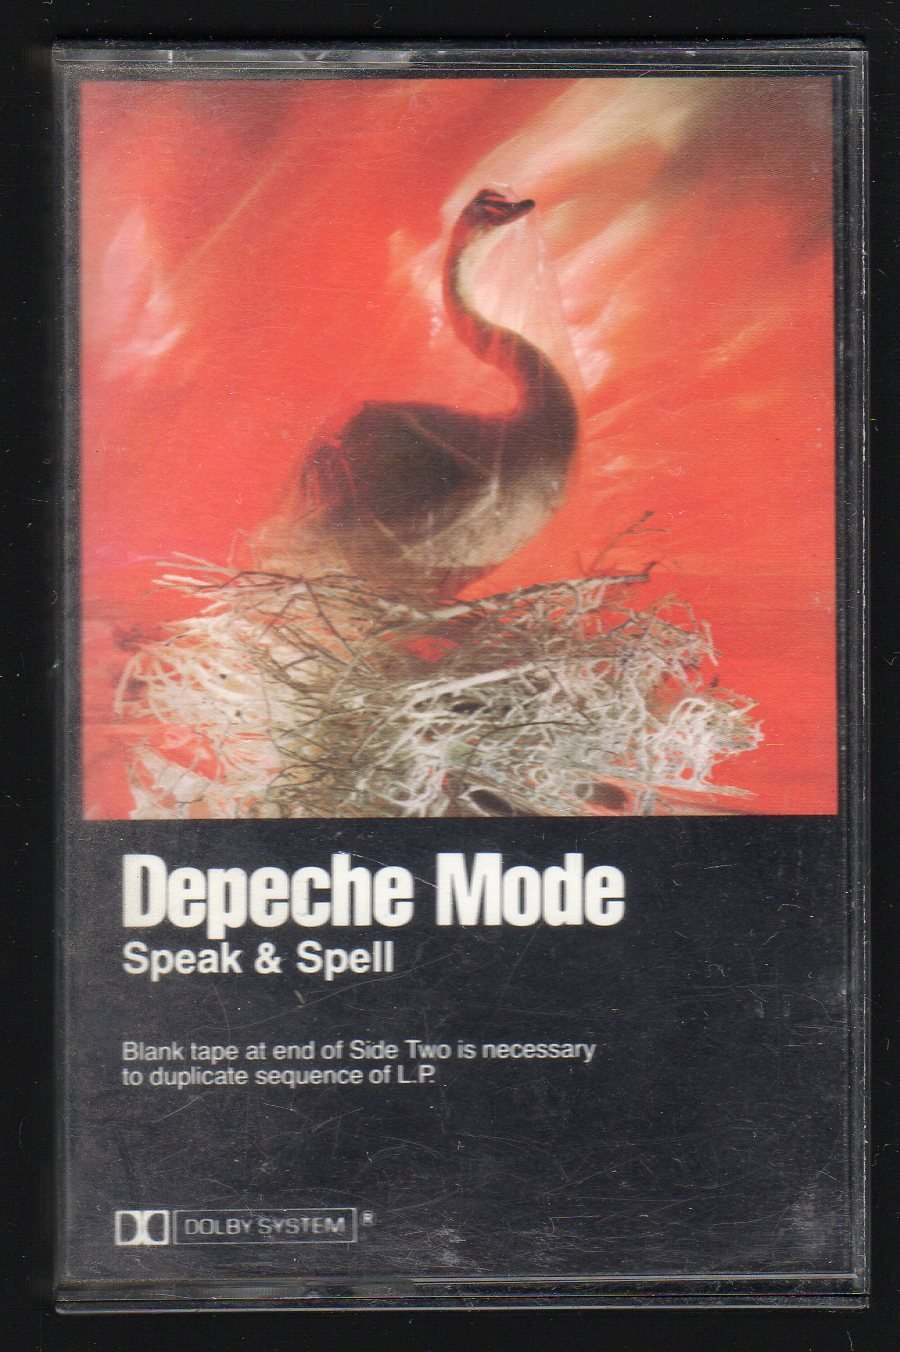 Depeche Mode - Speak & Spell C3 Cassette Tape